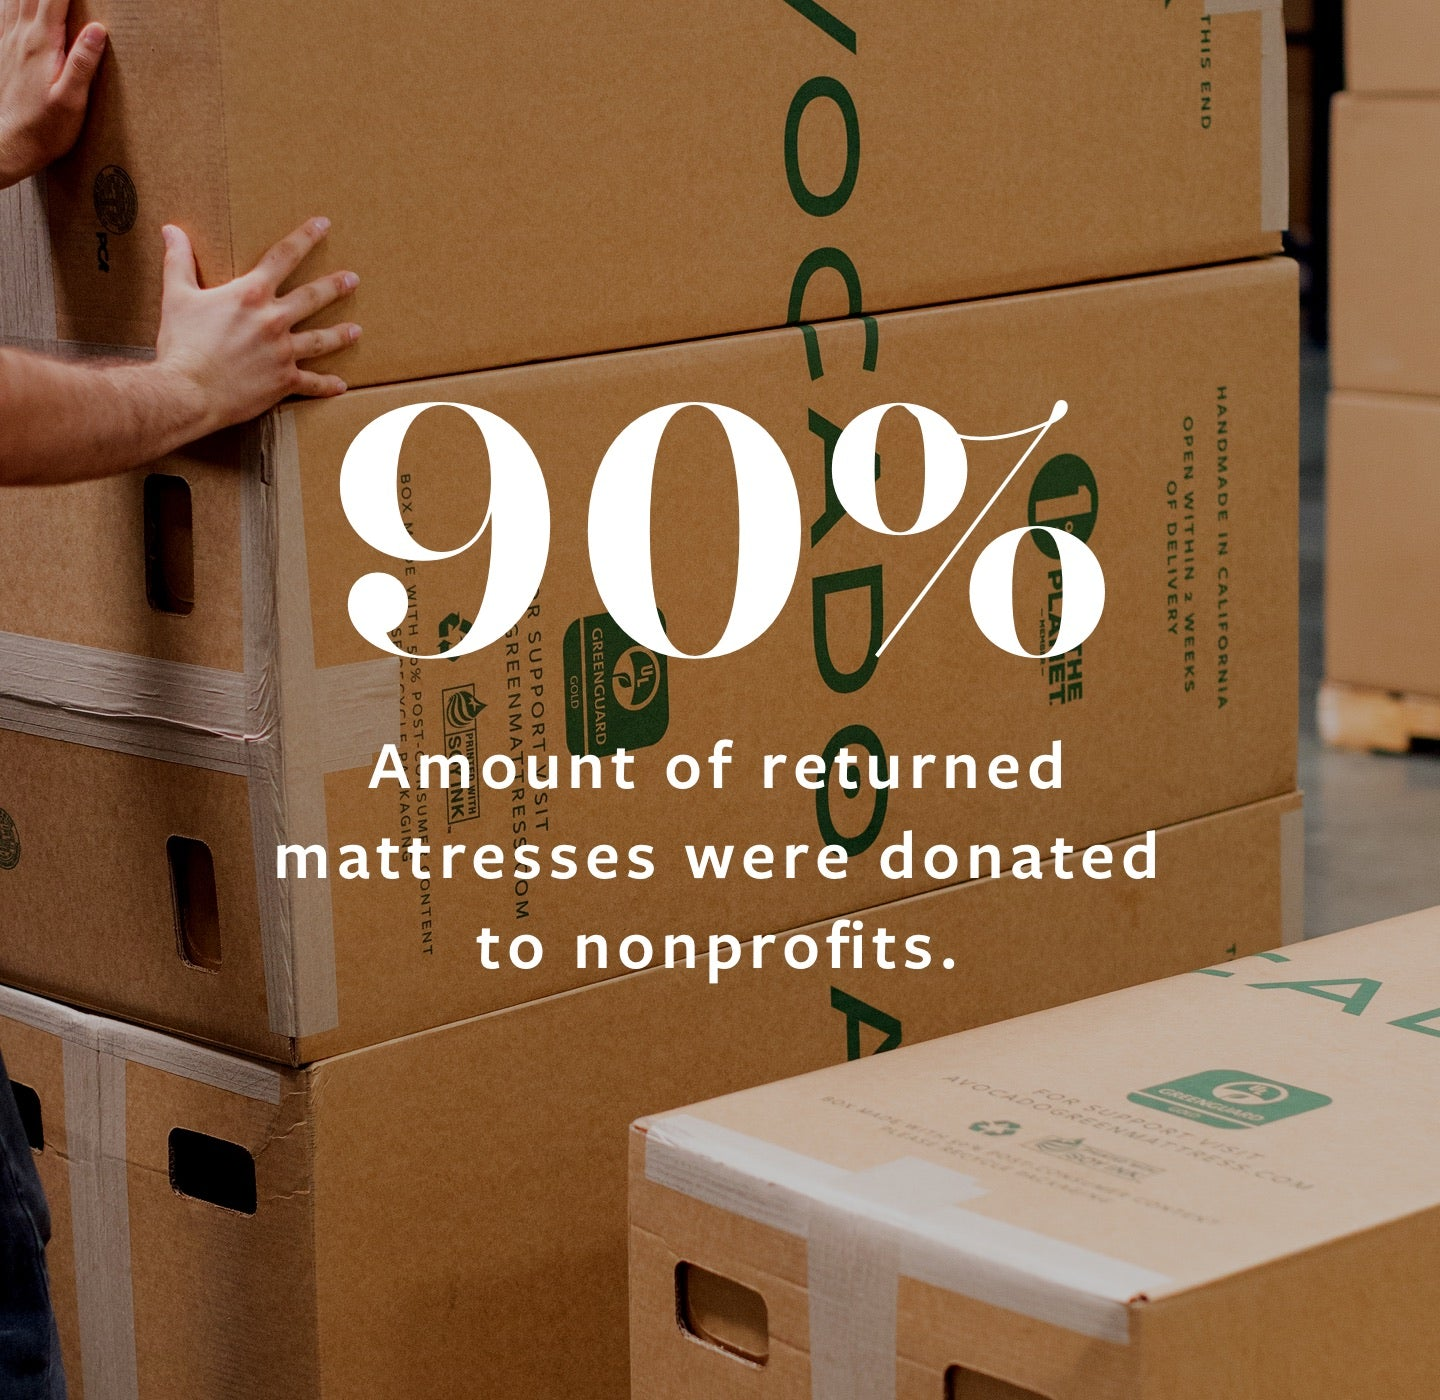 90 Percent of Mattresses Donated to Non-profits